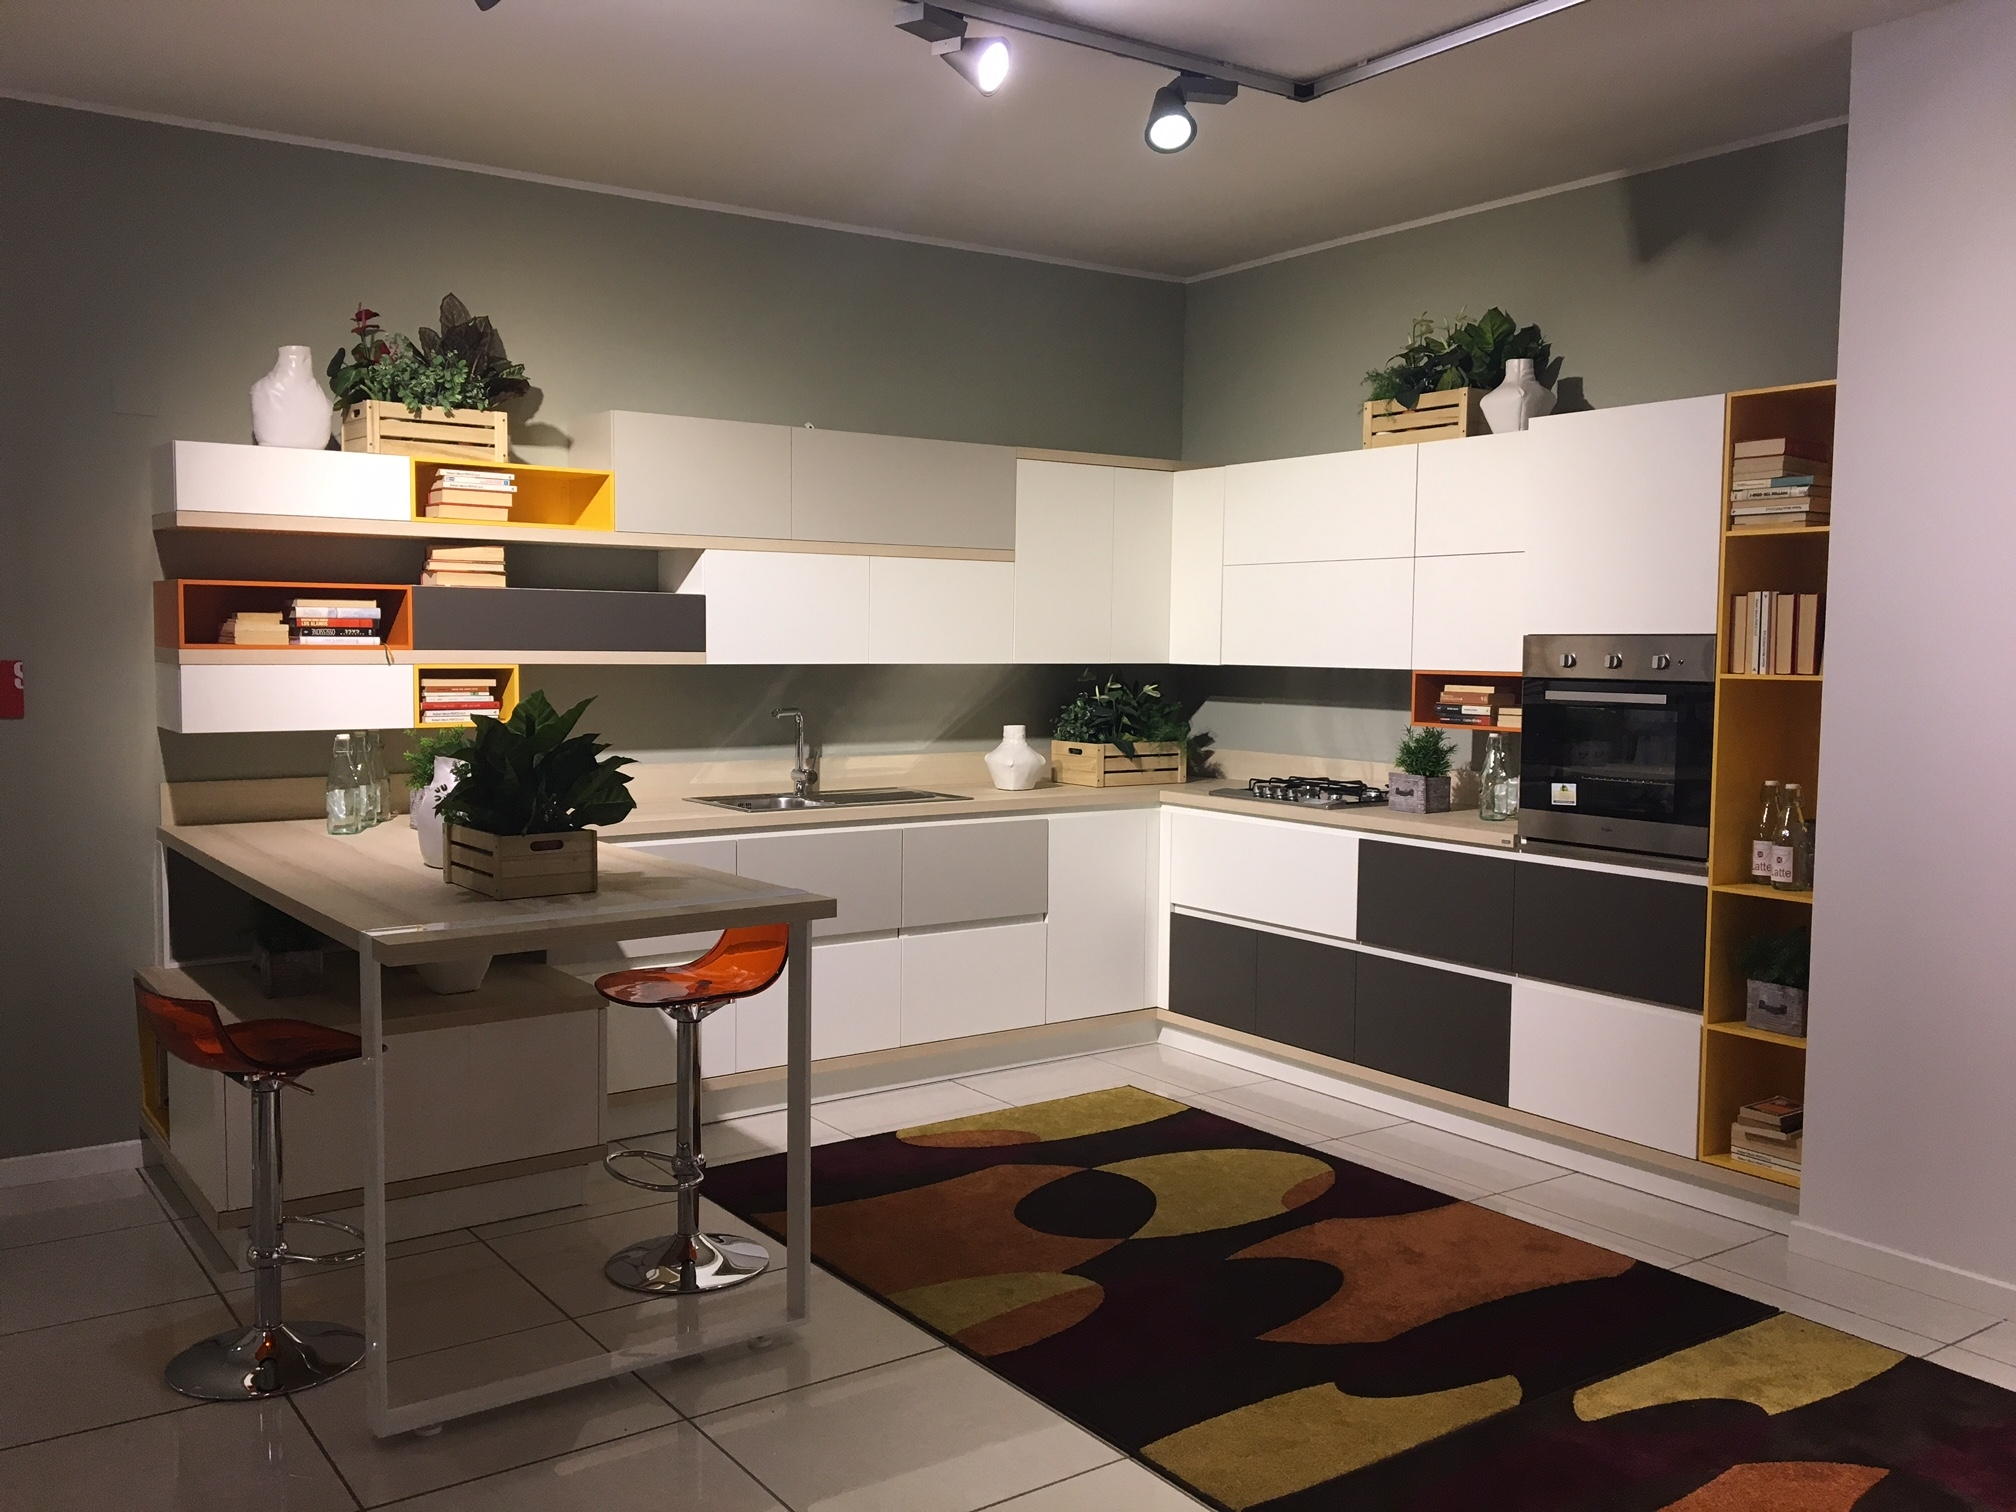 Beautiful offerta cucine scavolini images ideas design for Outlet cucine scavolini